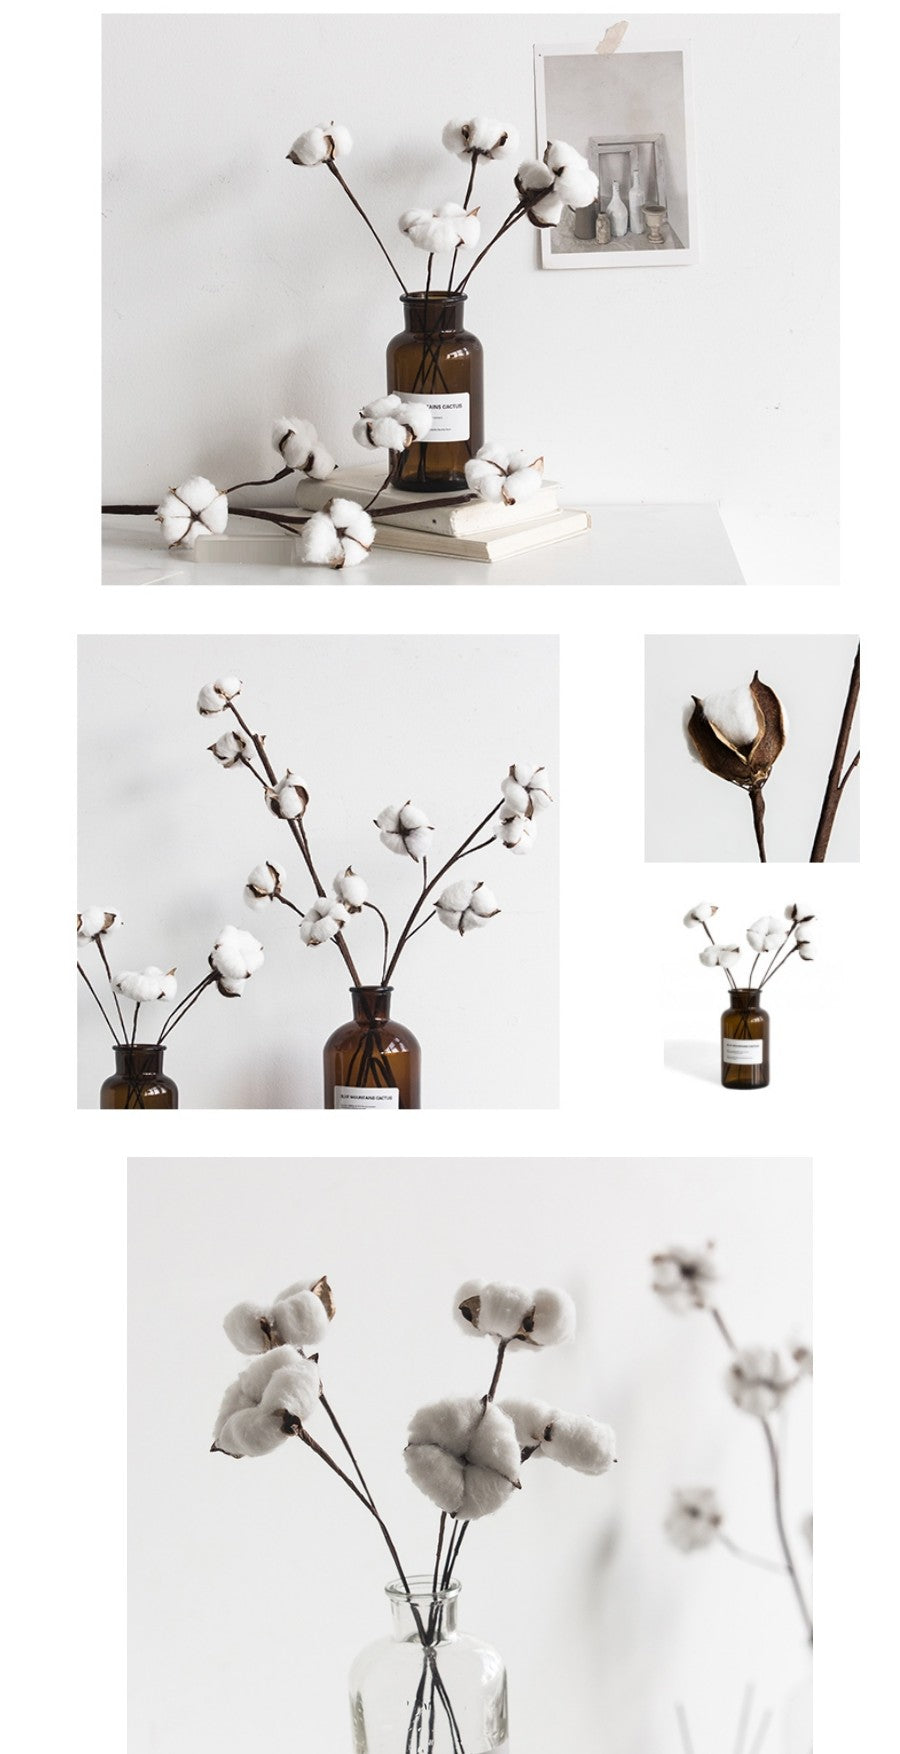 A Bunch of Cotton Flower, Rustic Atificial Flowers, Cotton Stems, Cotton Stalks